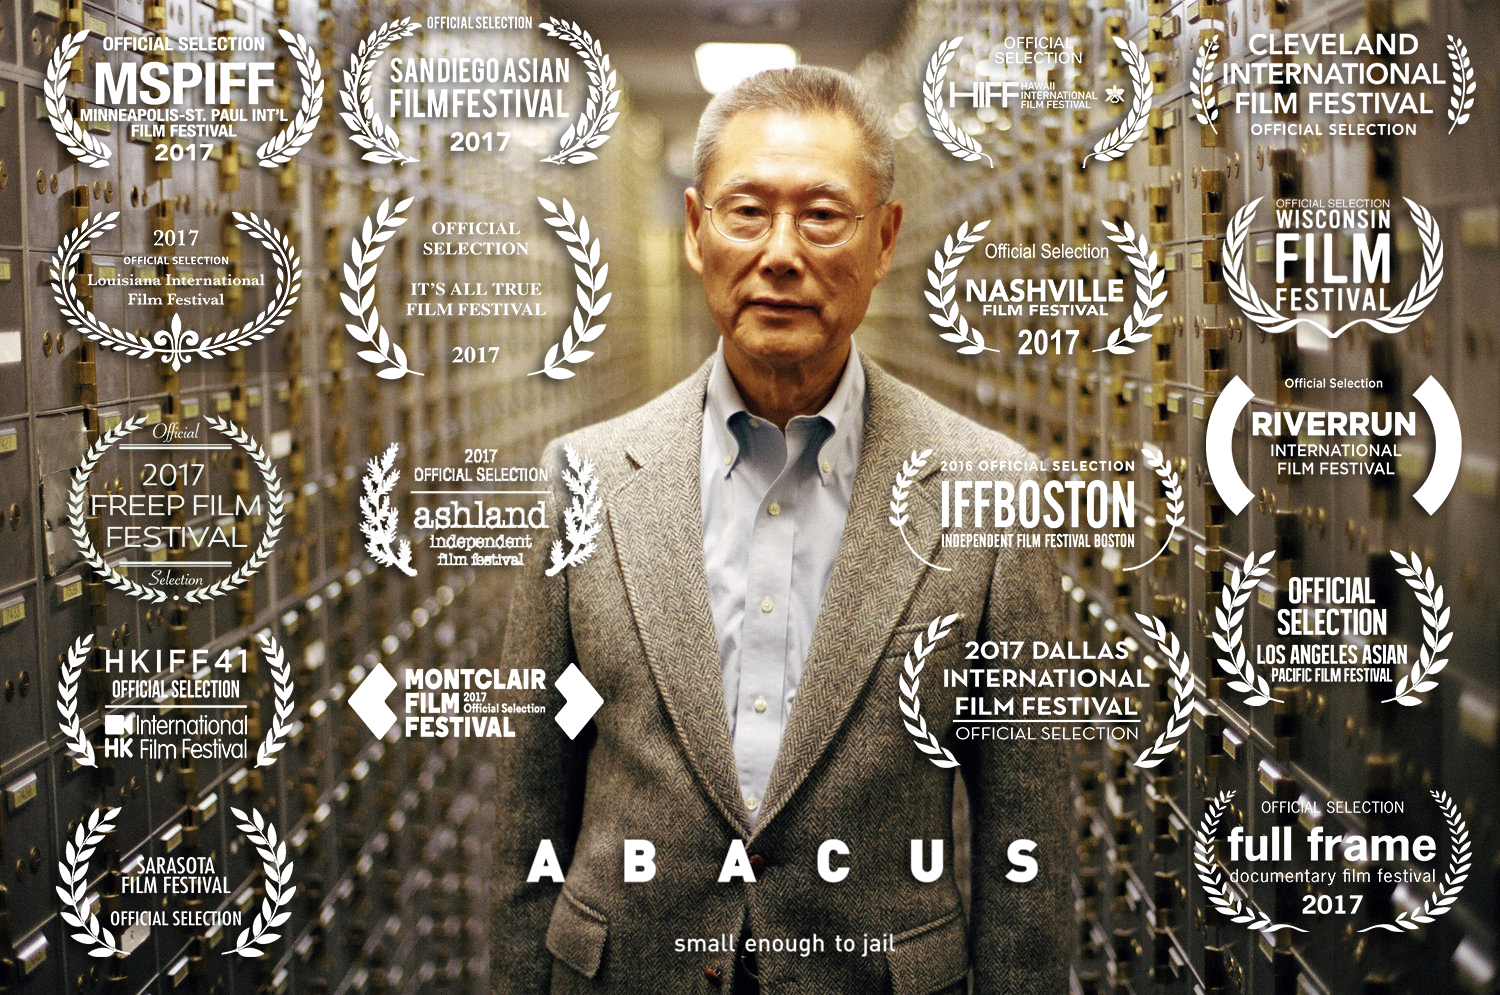 Image result for abacus small enough to jail poster